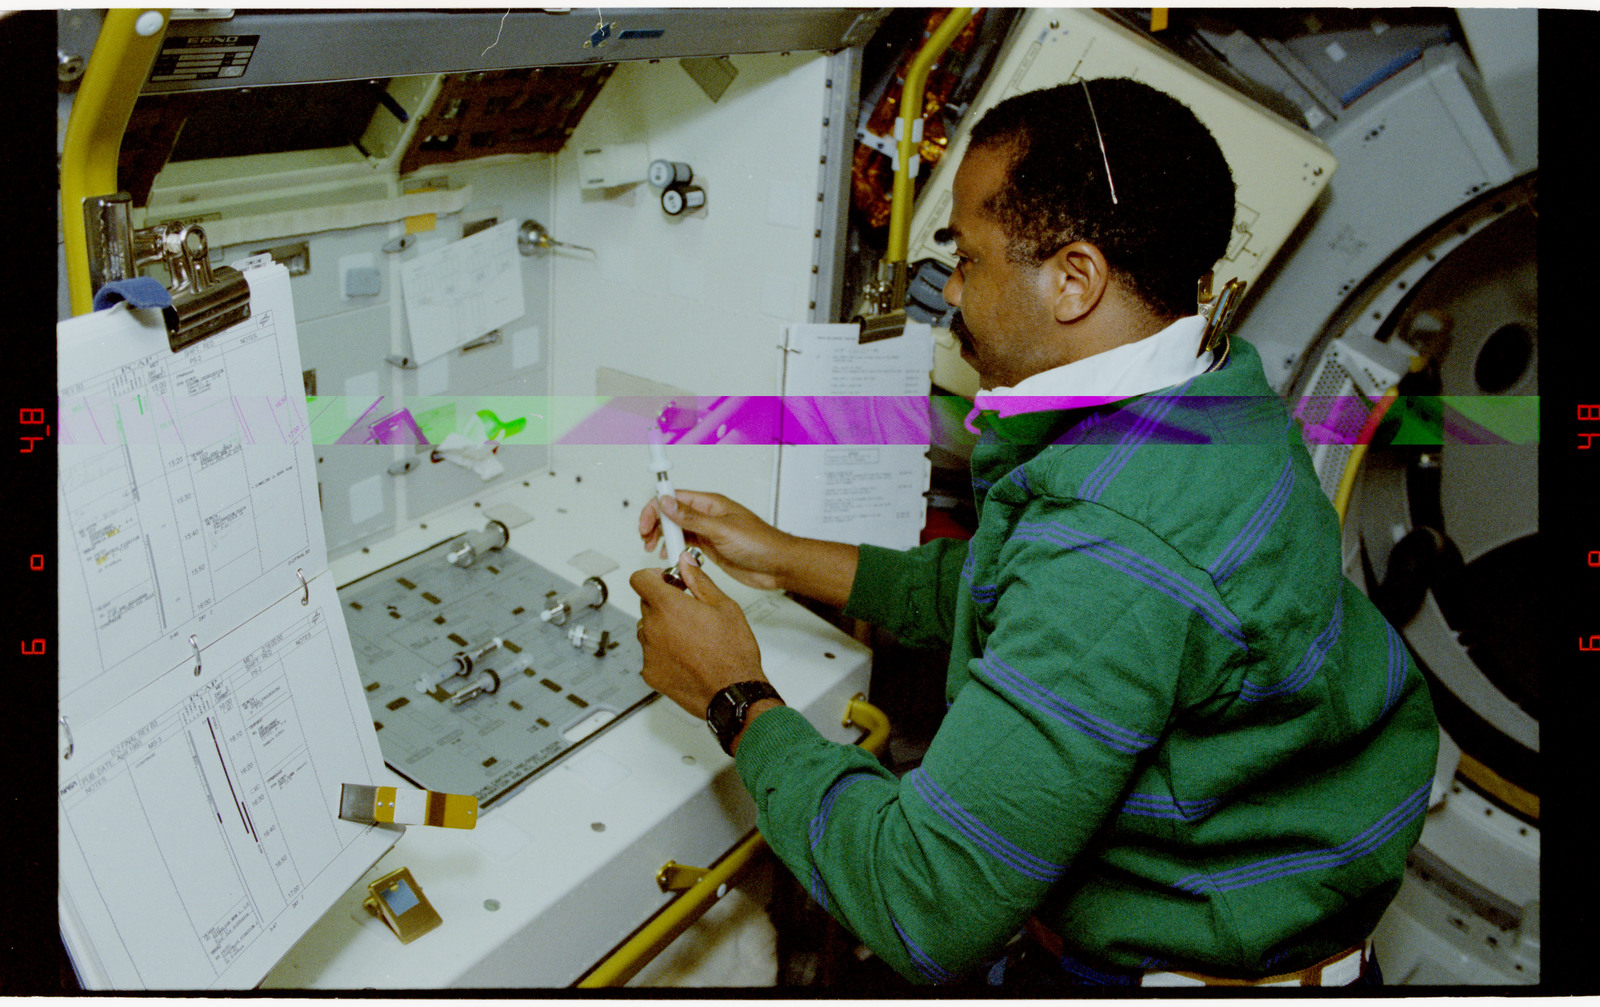 STS055-23-014 - STS-055 - Crewmember at Work Preparing Syringes in the D-2 Spacelab